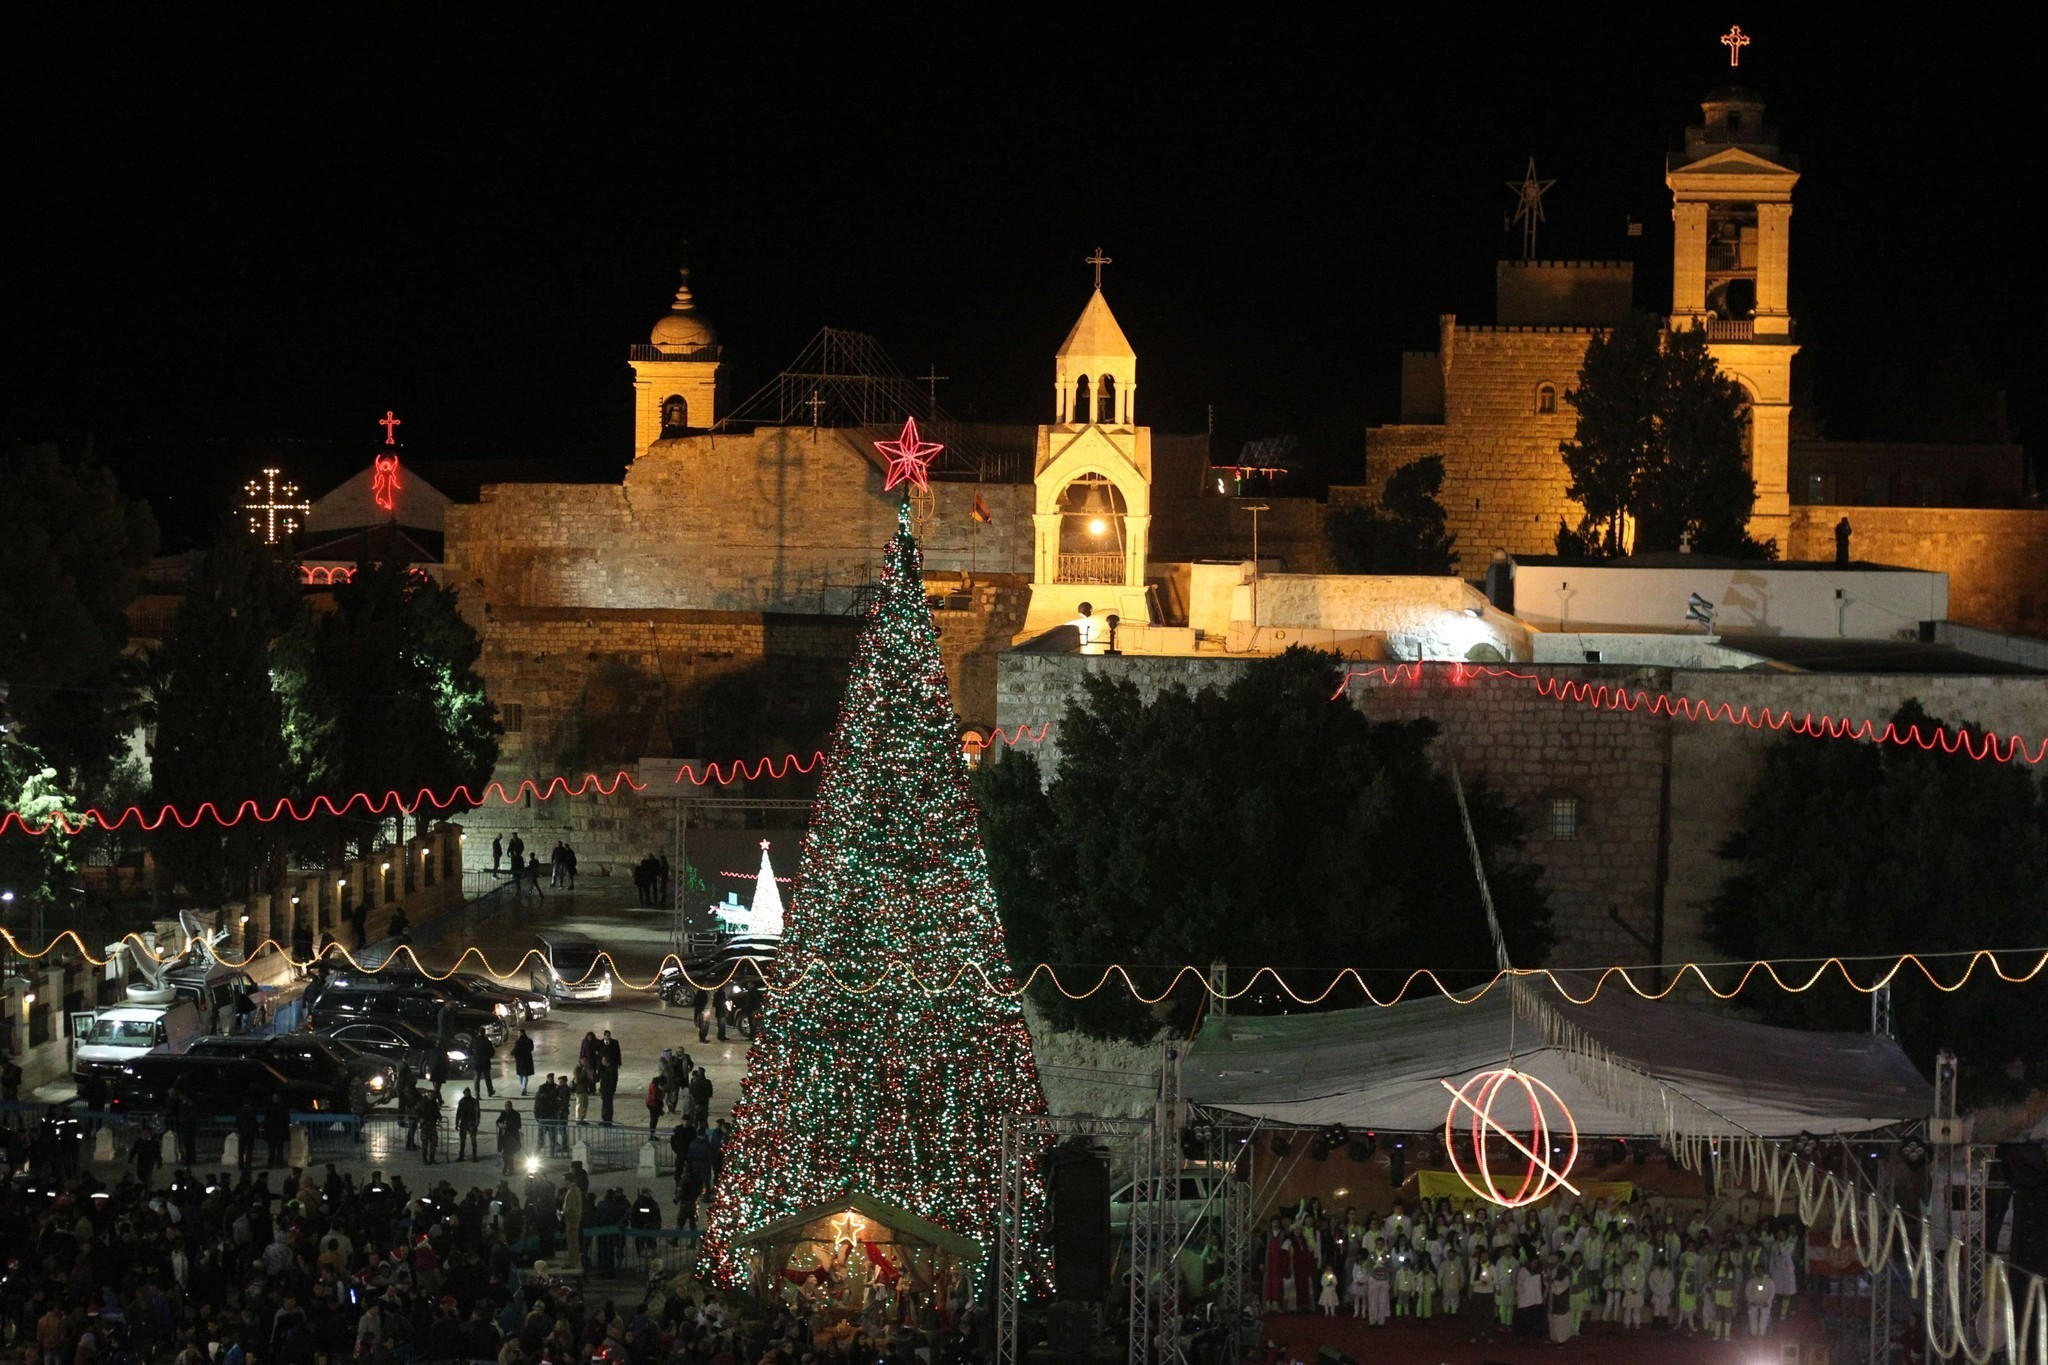 Christmas in Bethlehem: the place where the festival has its origins